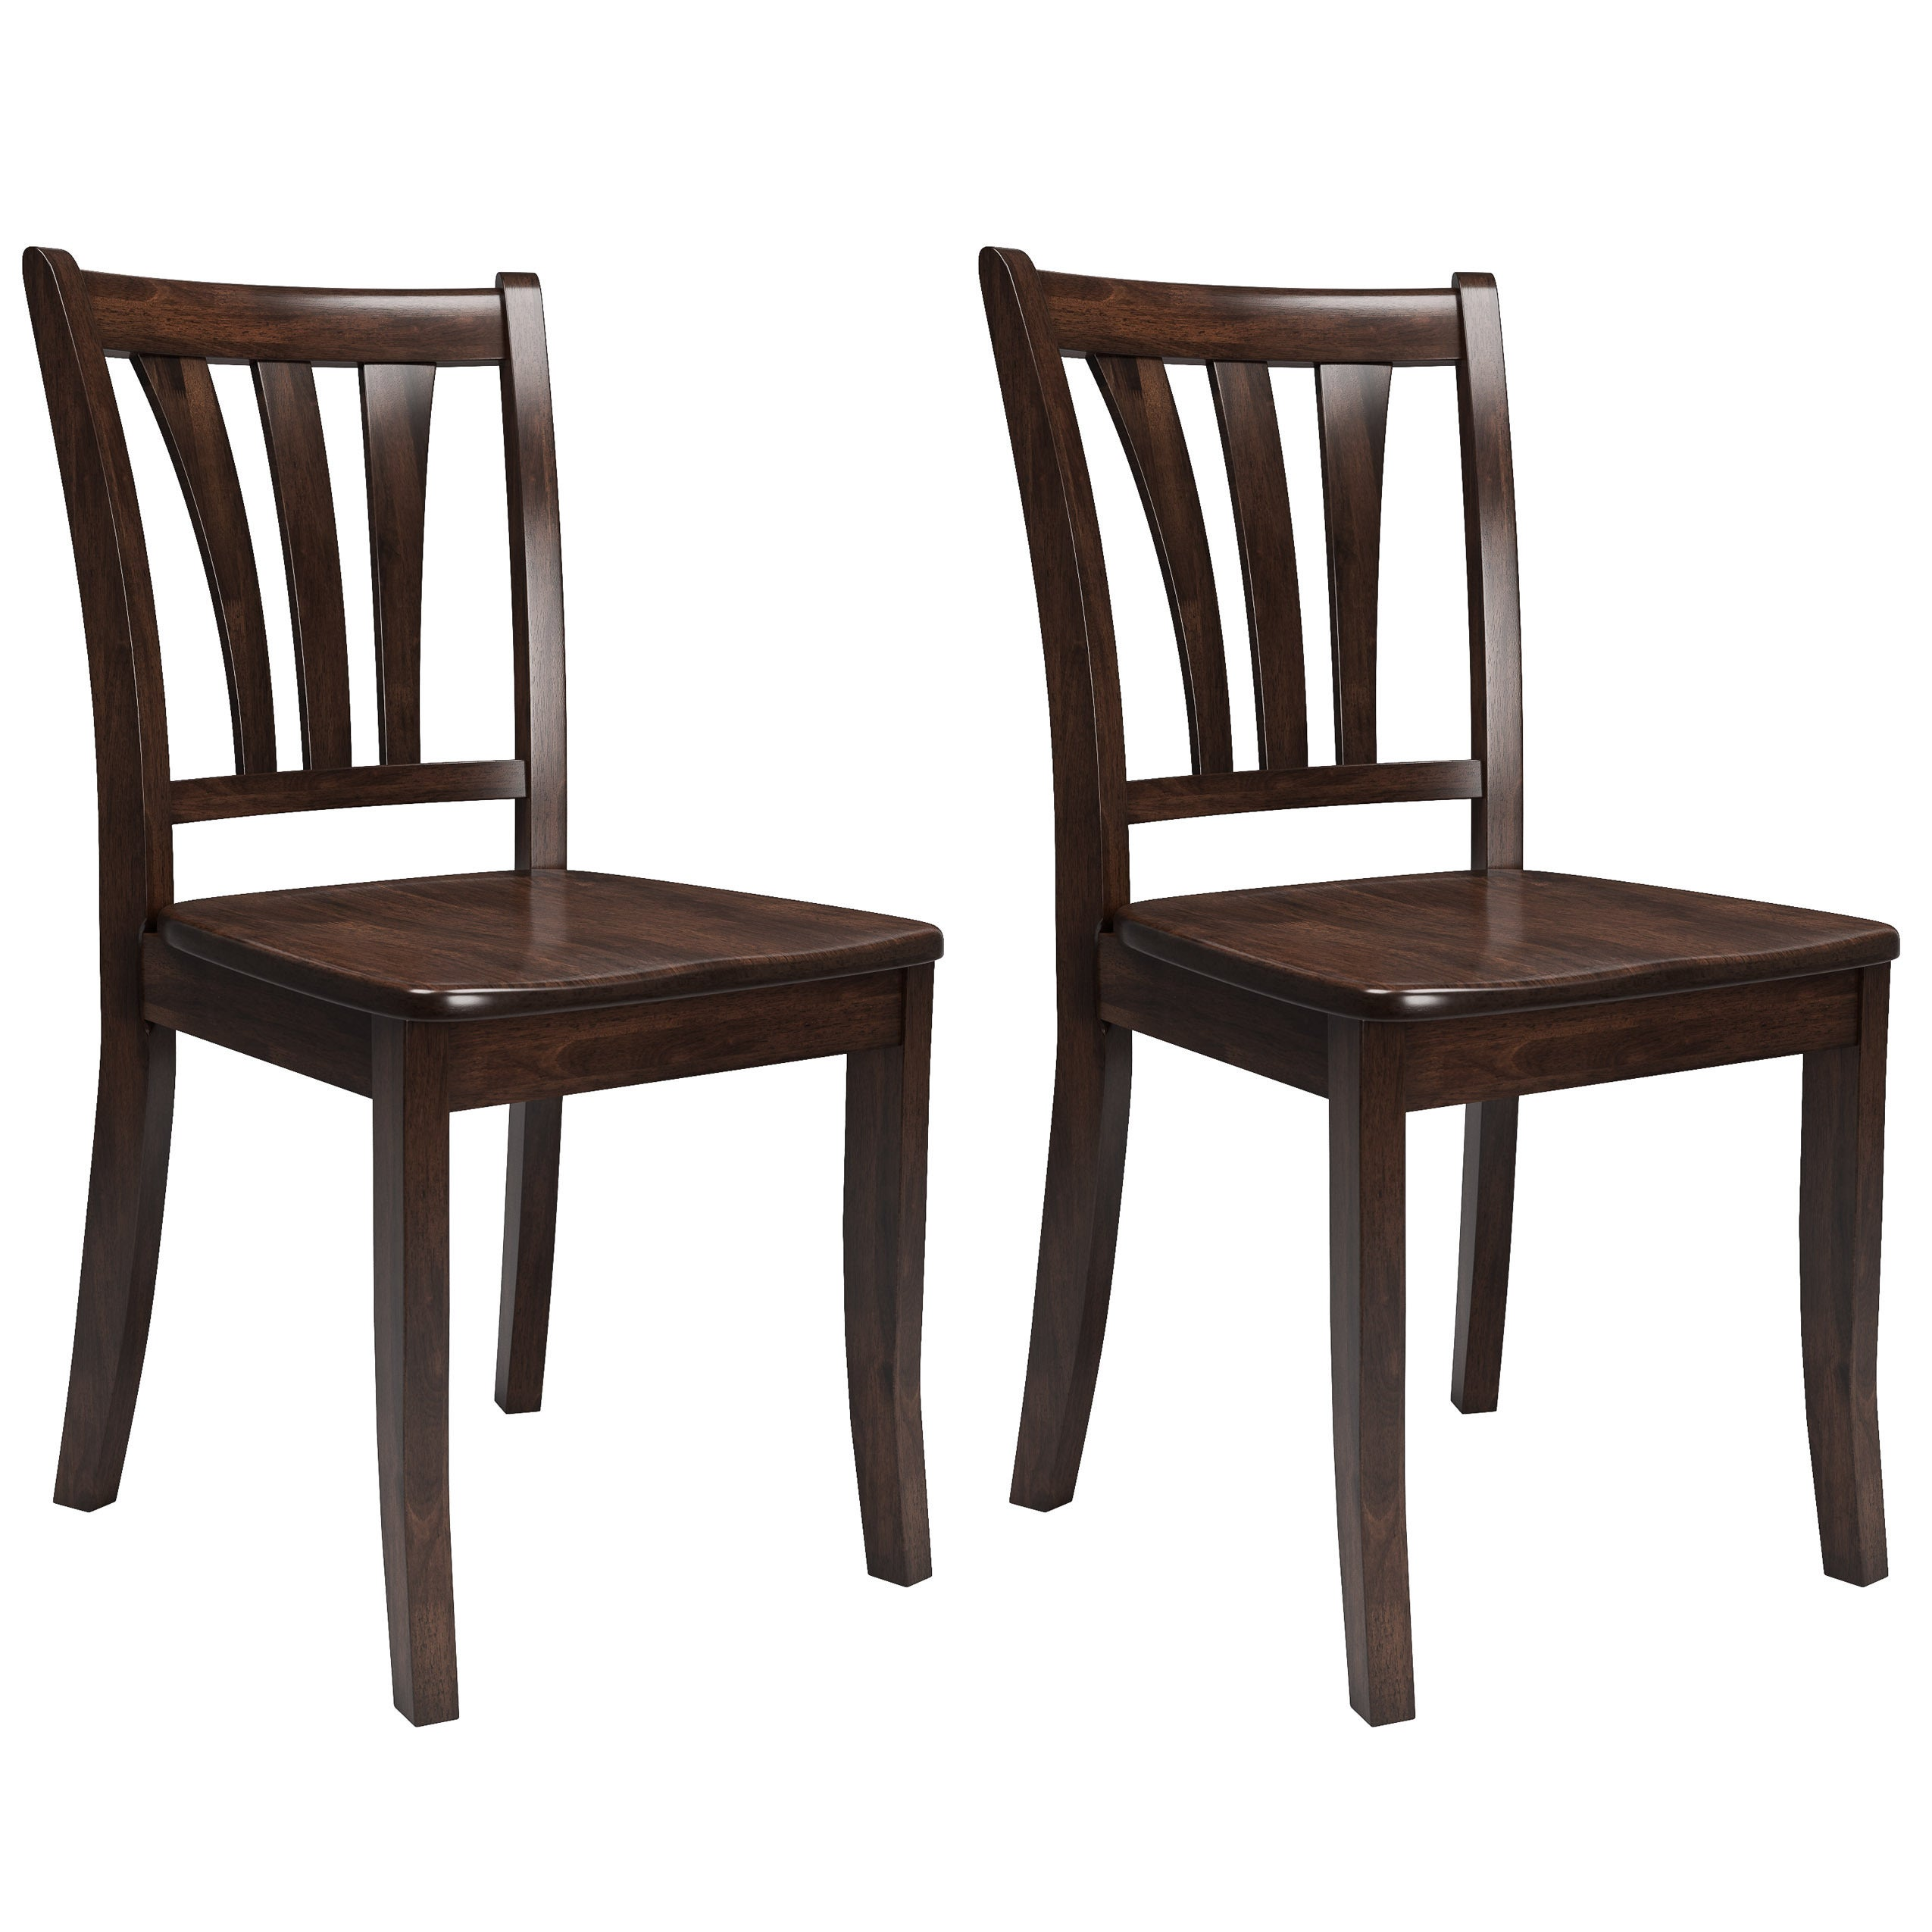 CorLiving Dillon Cappuccino Stained Solid Wood Dining Chairs (Set of 2) -  Free Shipping Today - Overstock - 21888916 0261bf6f84